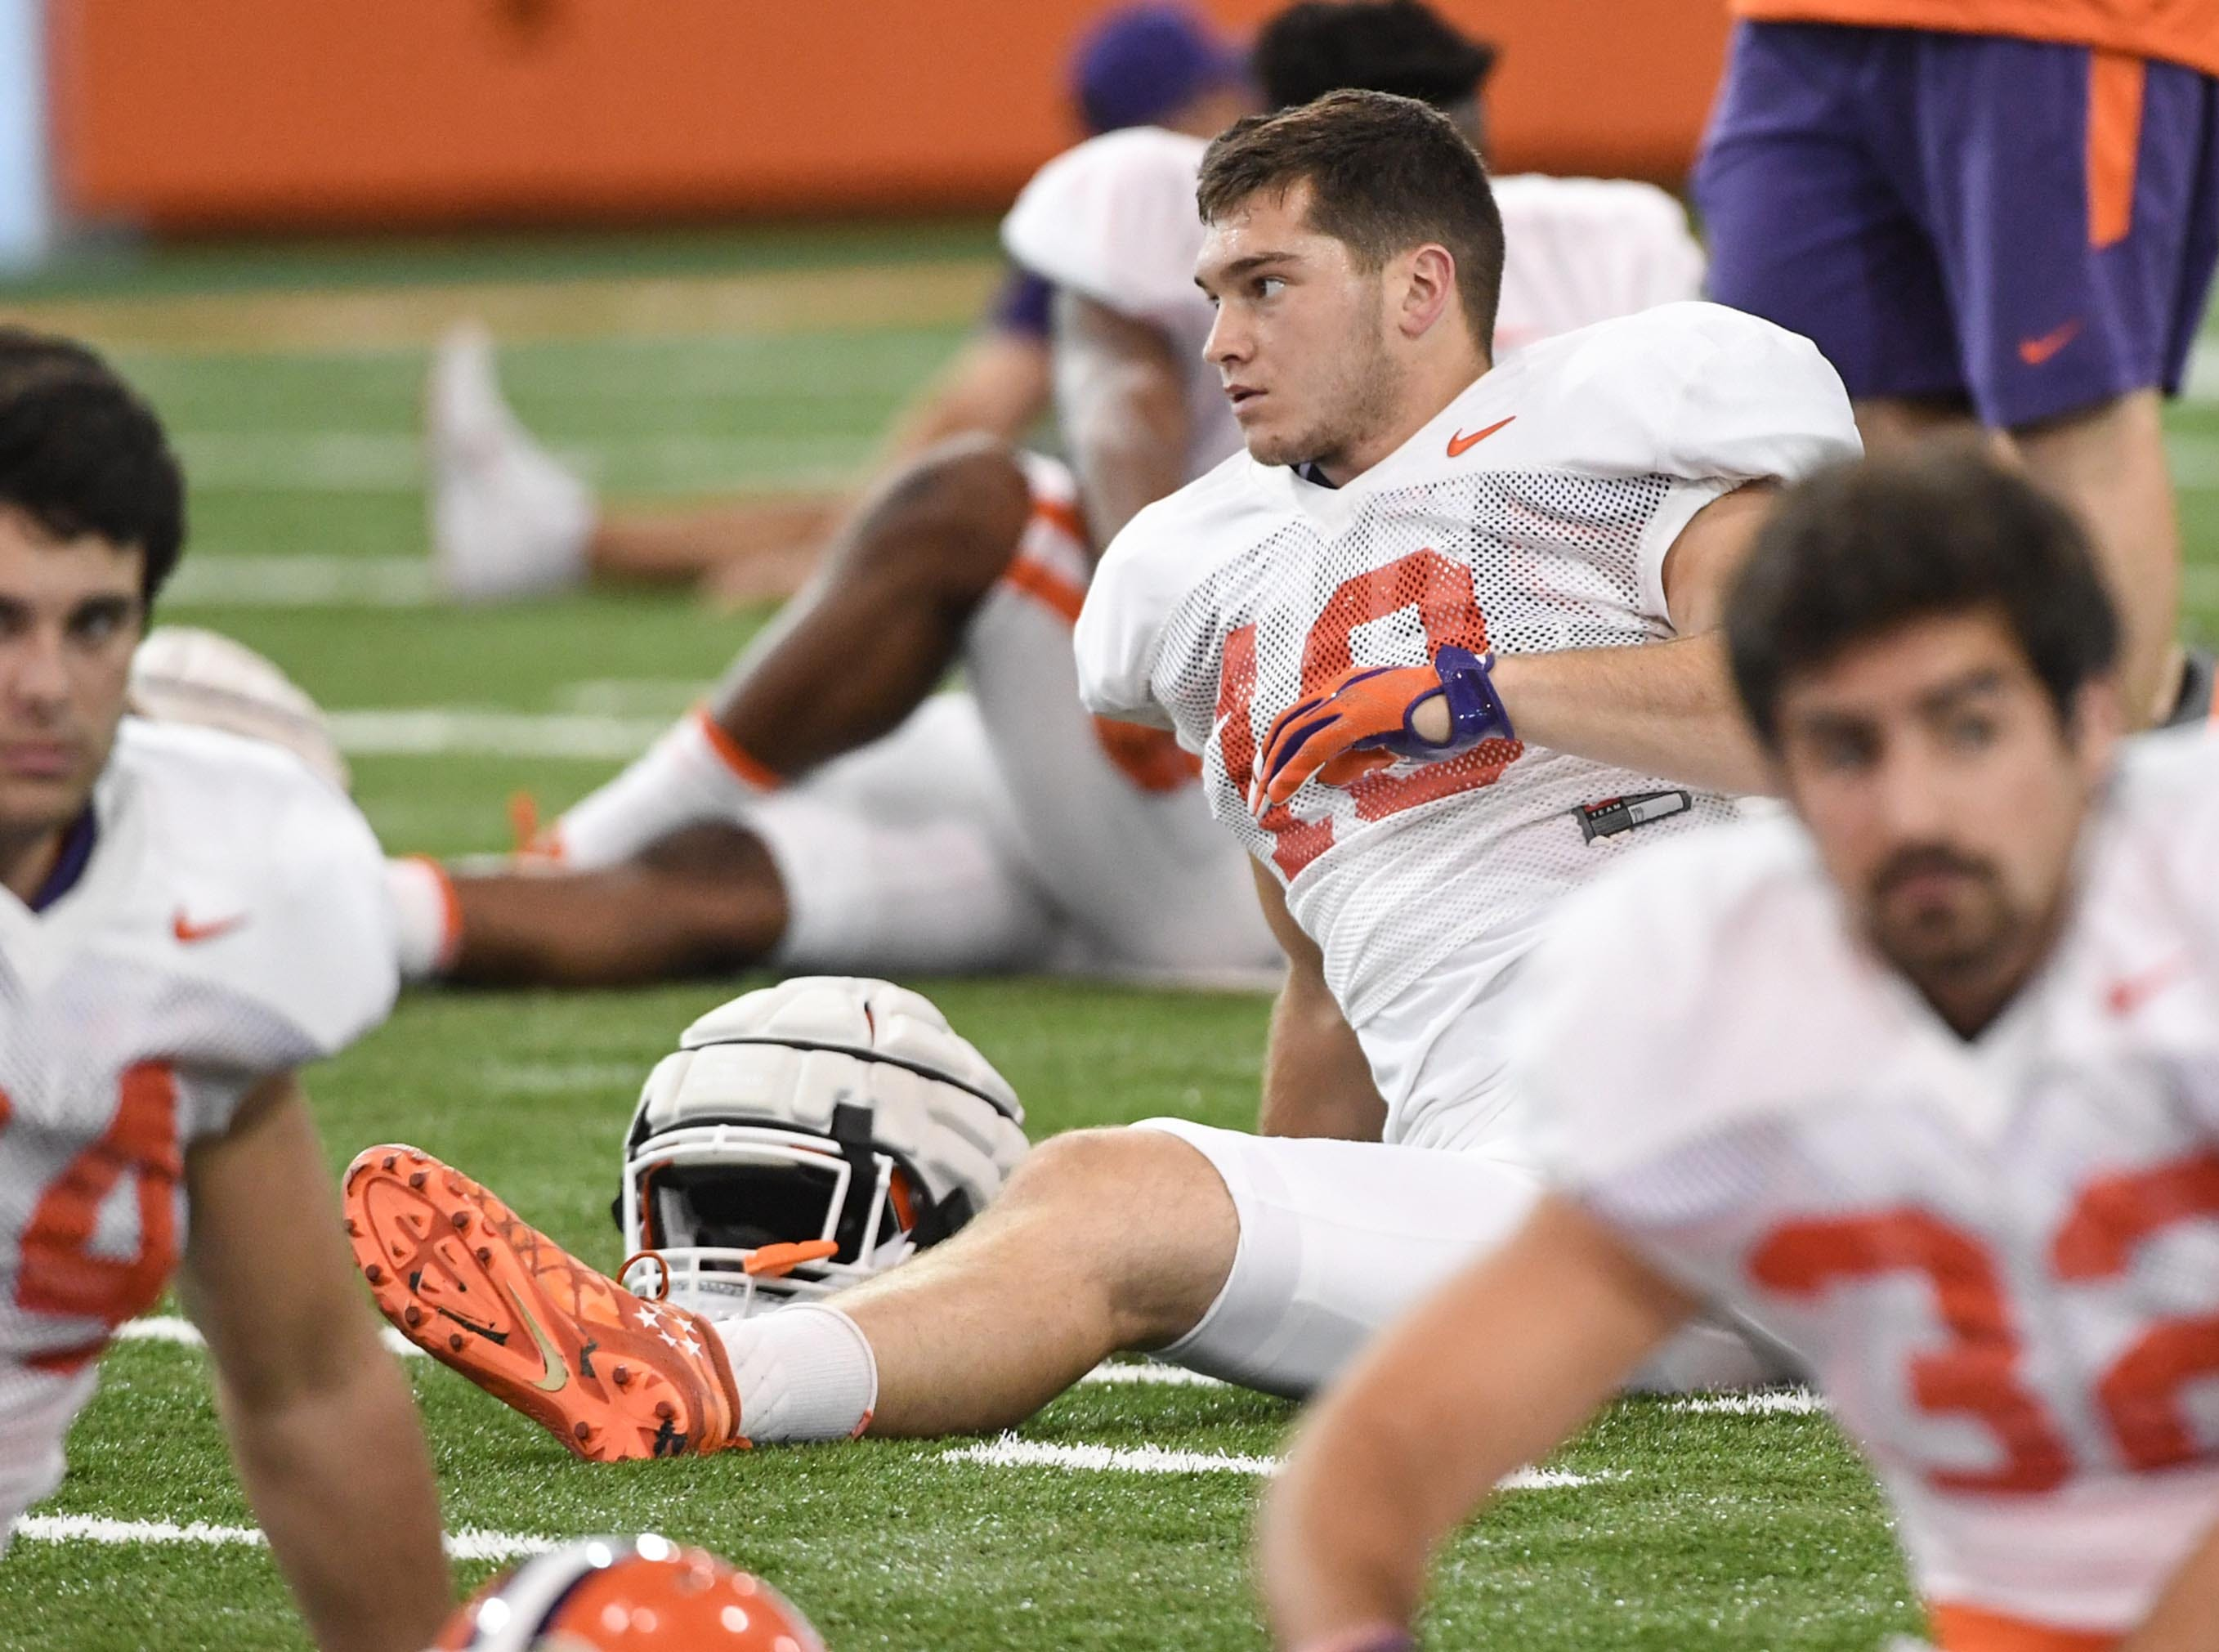 Clemson linebacker Baylon Spector (10) during fall practice in Clemson on Wednesday.